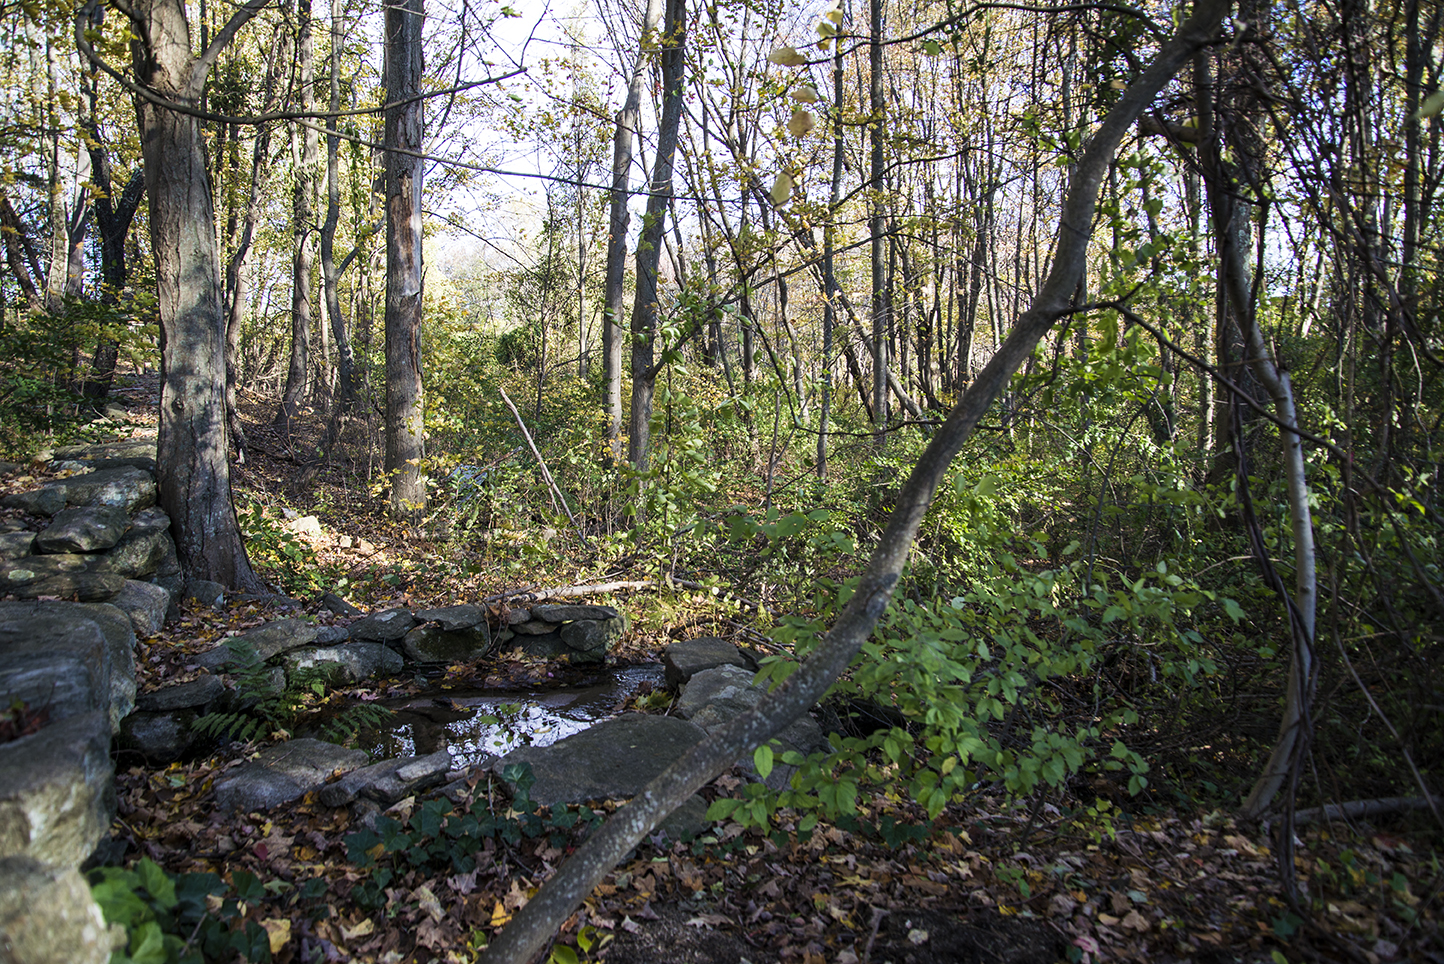 Neighbors are concerned the development of this wooded lot on Wilbur Road will alter wetlands and disturb a brook. (Joanna Detz/ecoRI News)